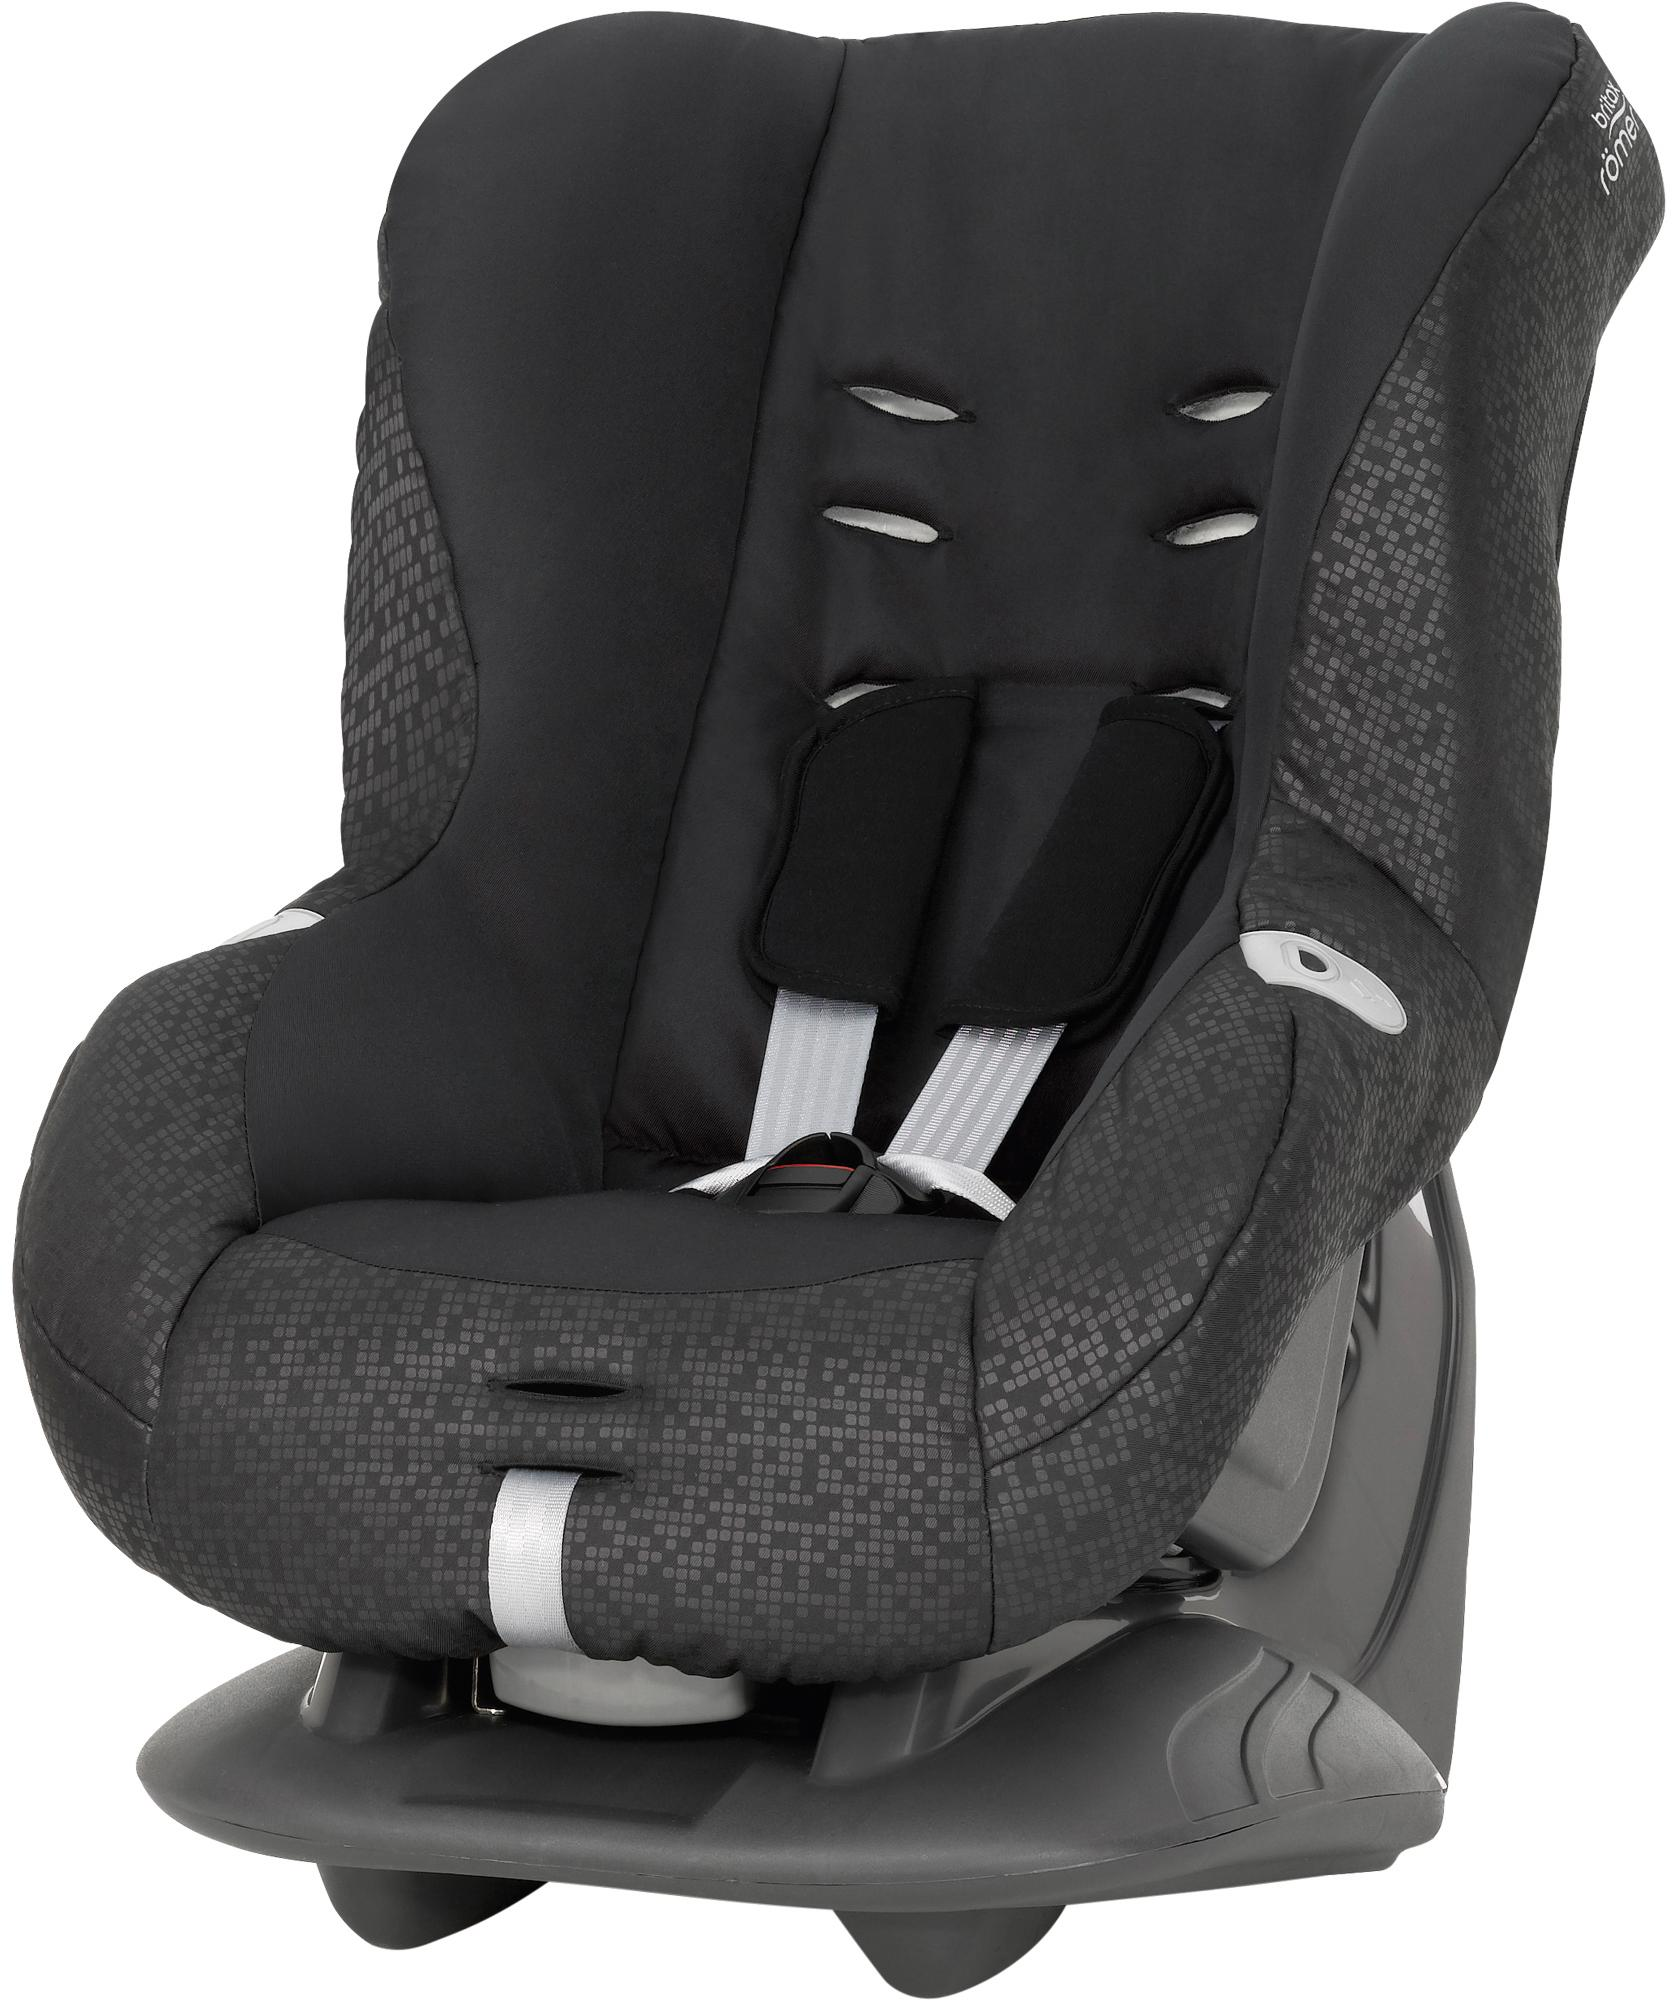 britax eclipse child car seat rh halfords com britax eclipse car seat user guide User Guide Icon